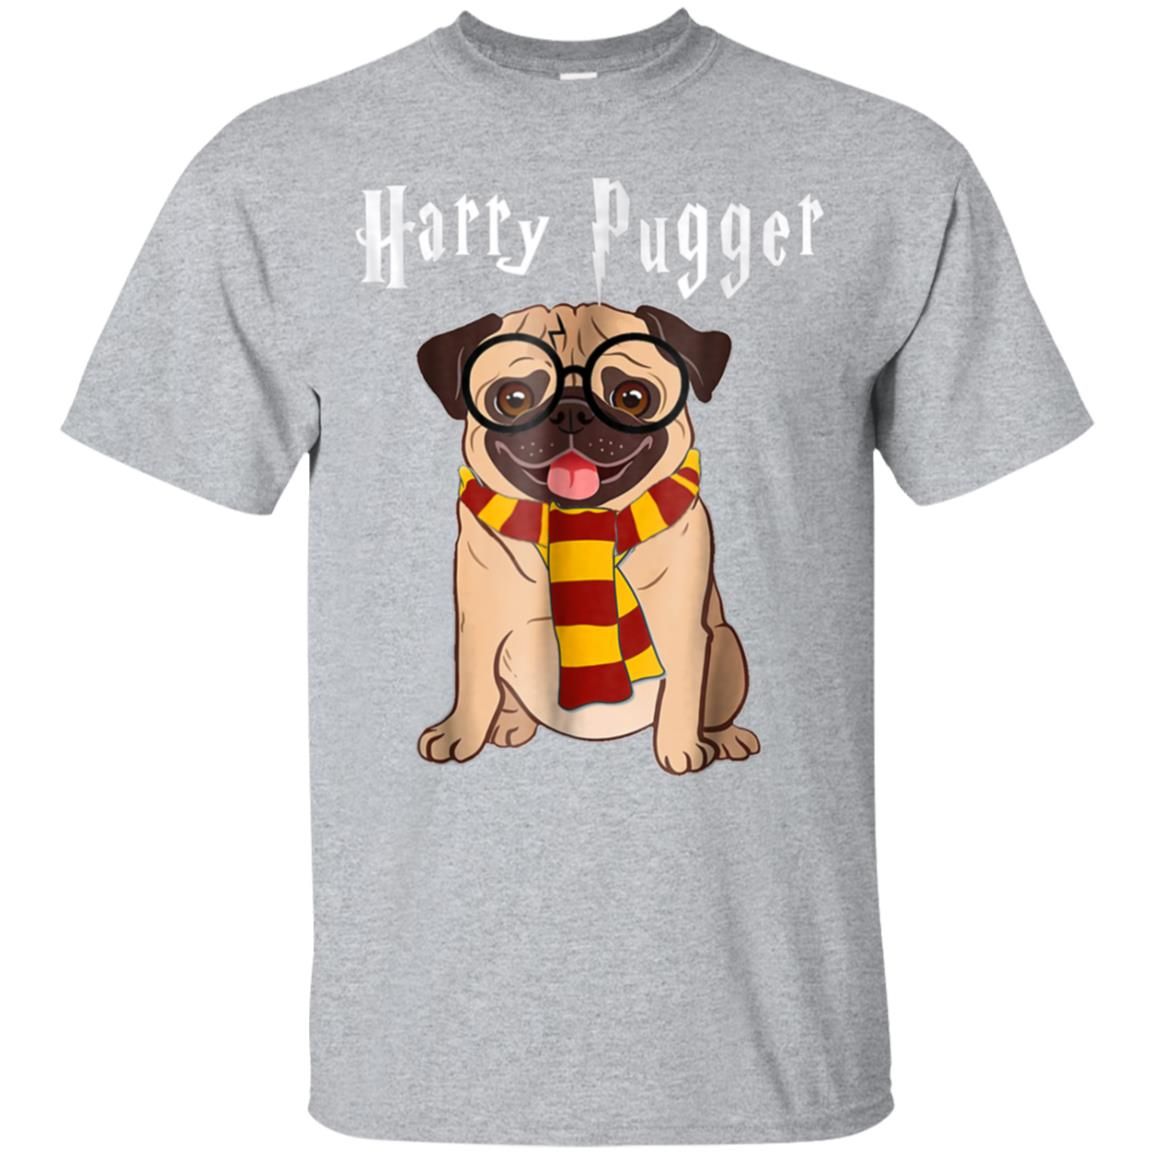 Funny Harry Pugger Magic Wizard Pug T-Shirt Pug Dog Gift 99promocode